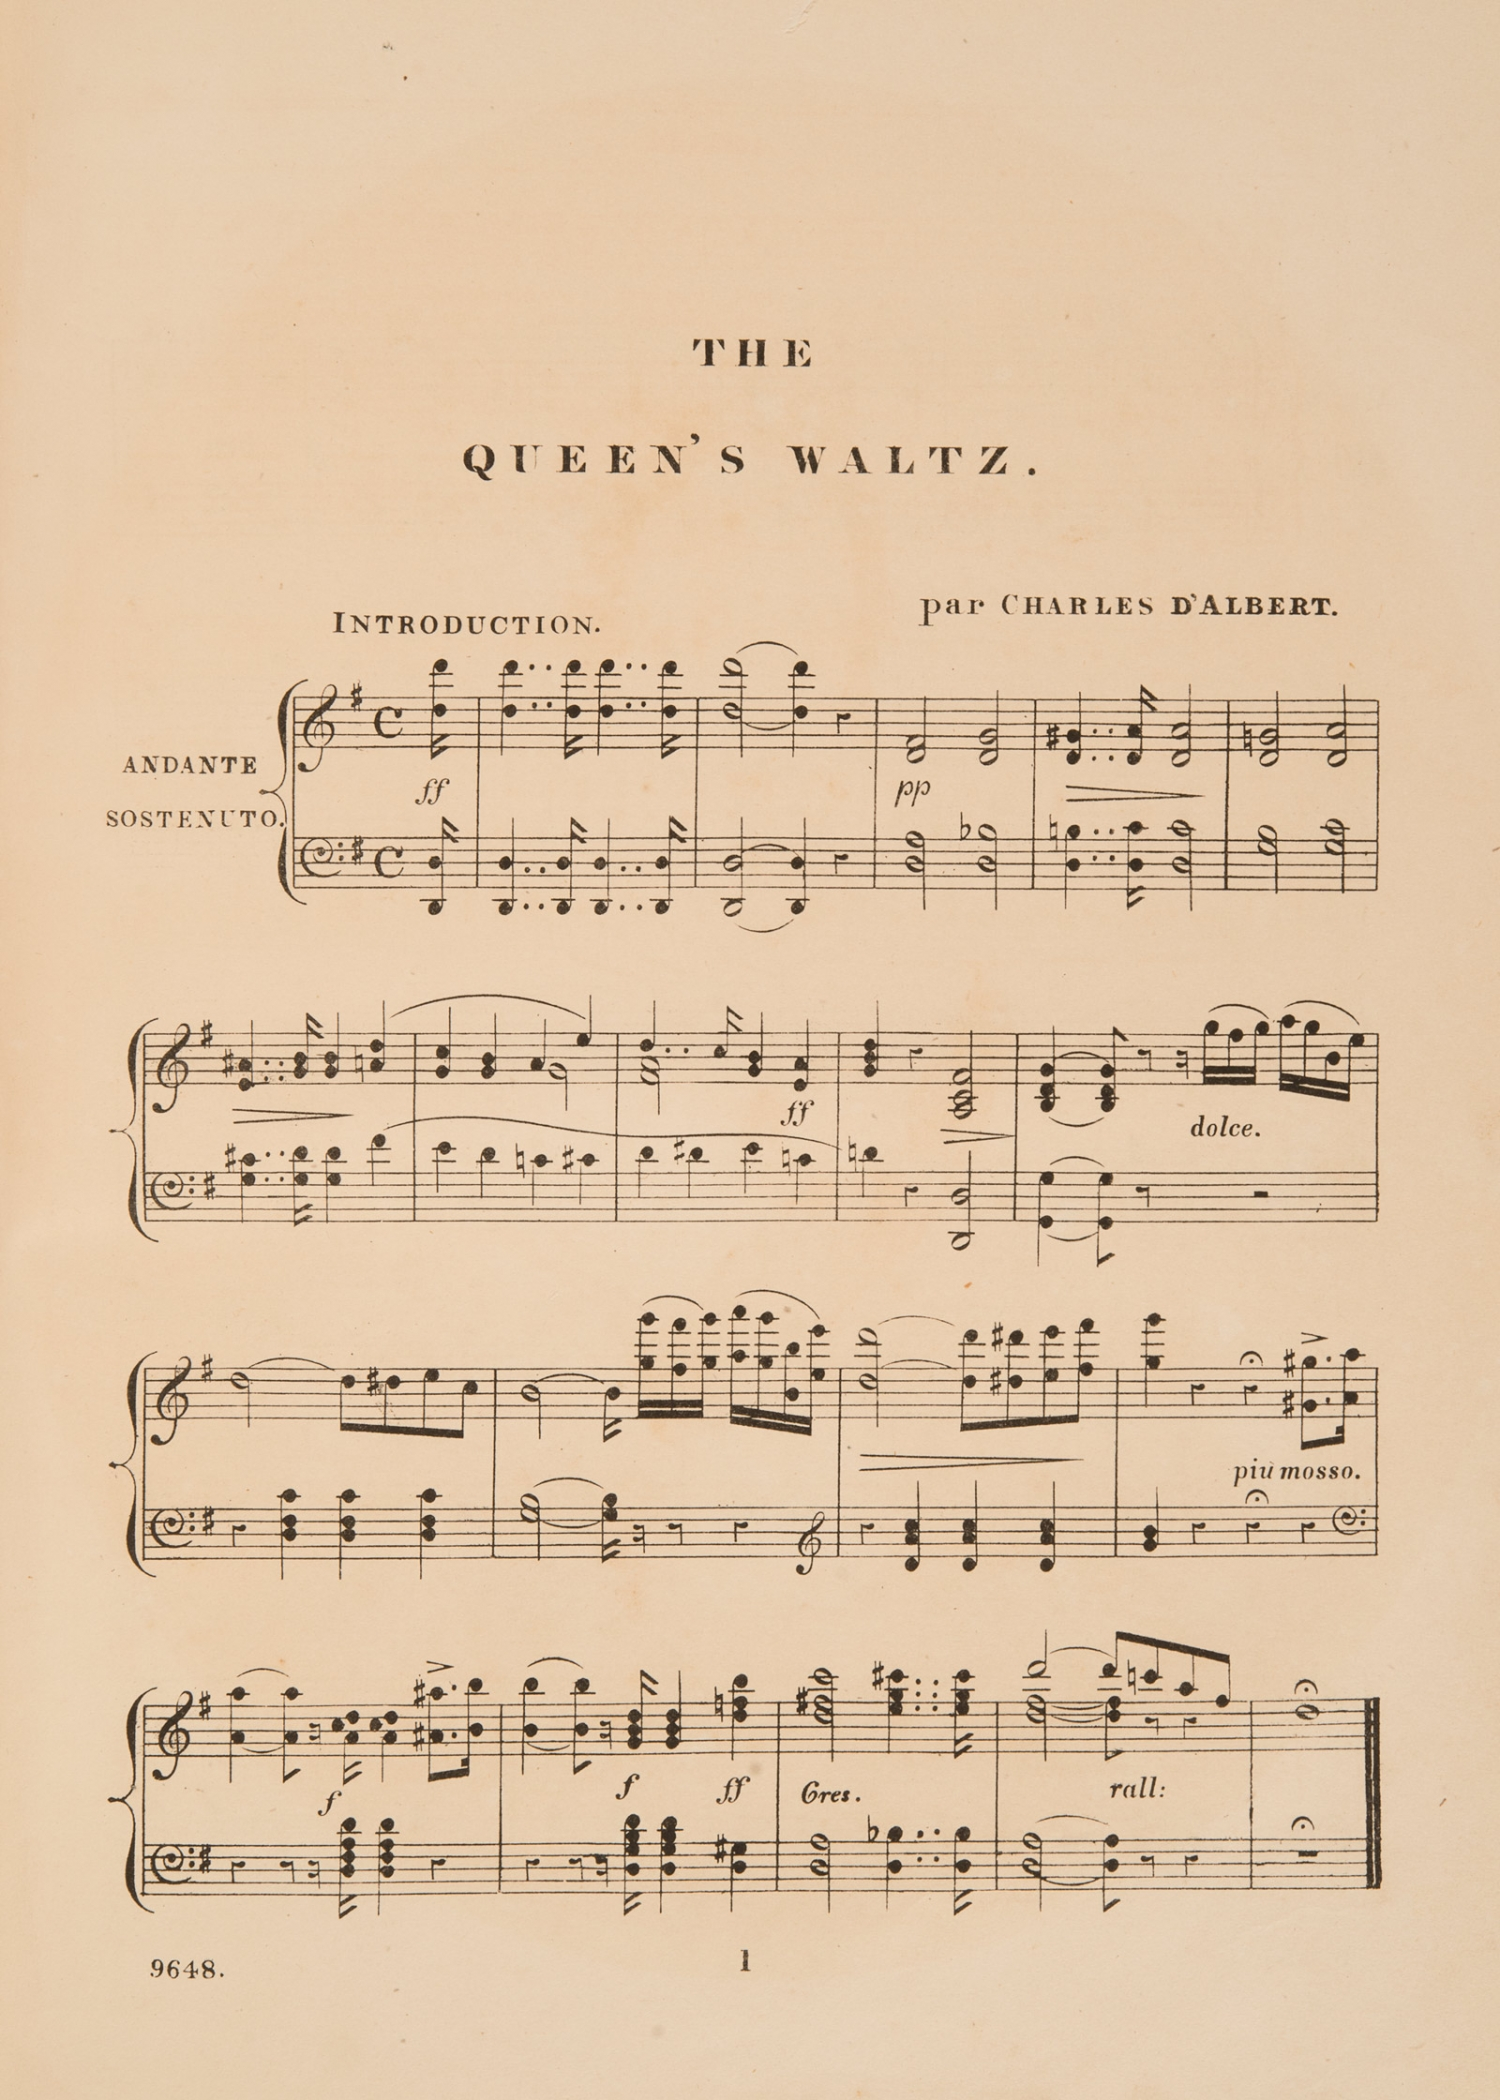 Sheet music, 'The Queen's Waltz', by Charles D'Albert, page 1, published 1857